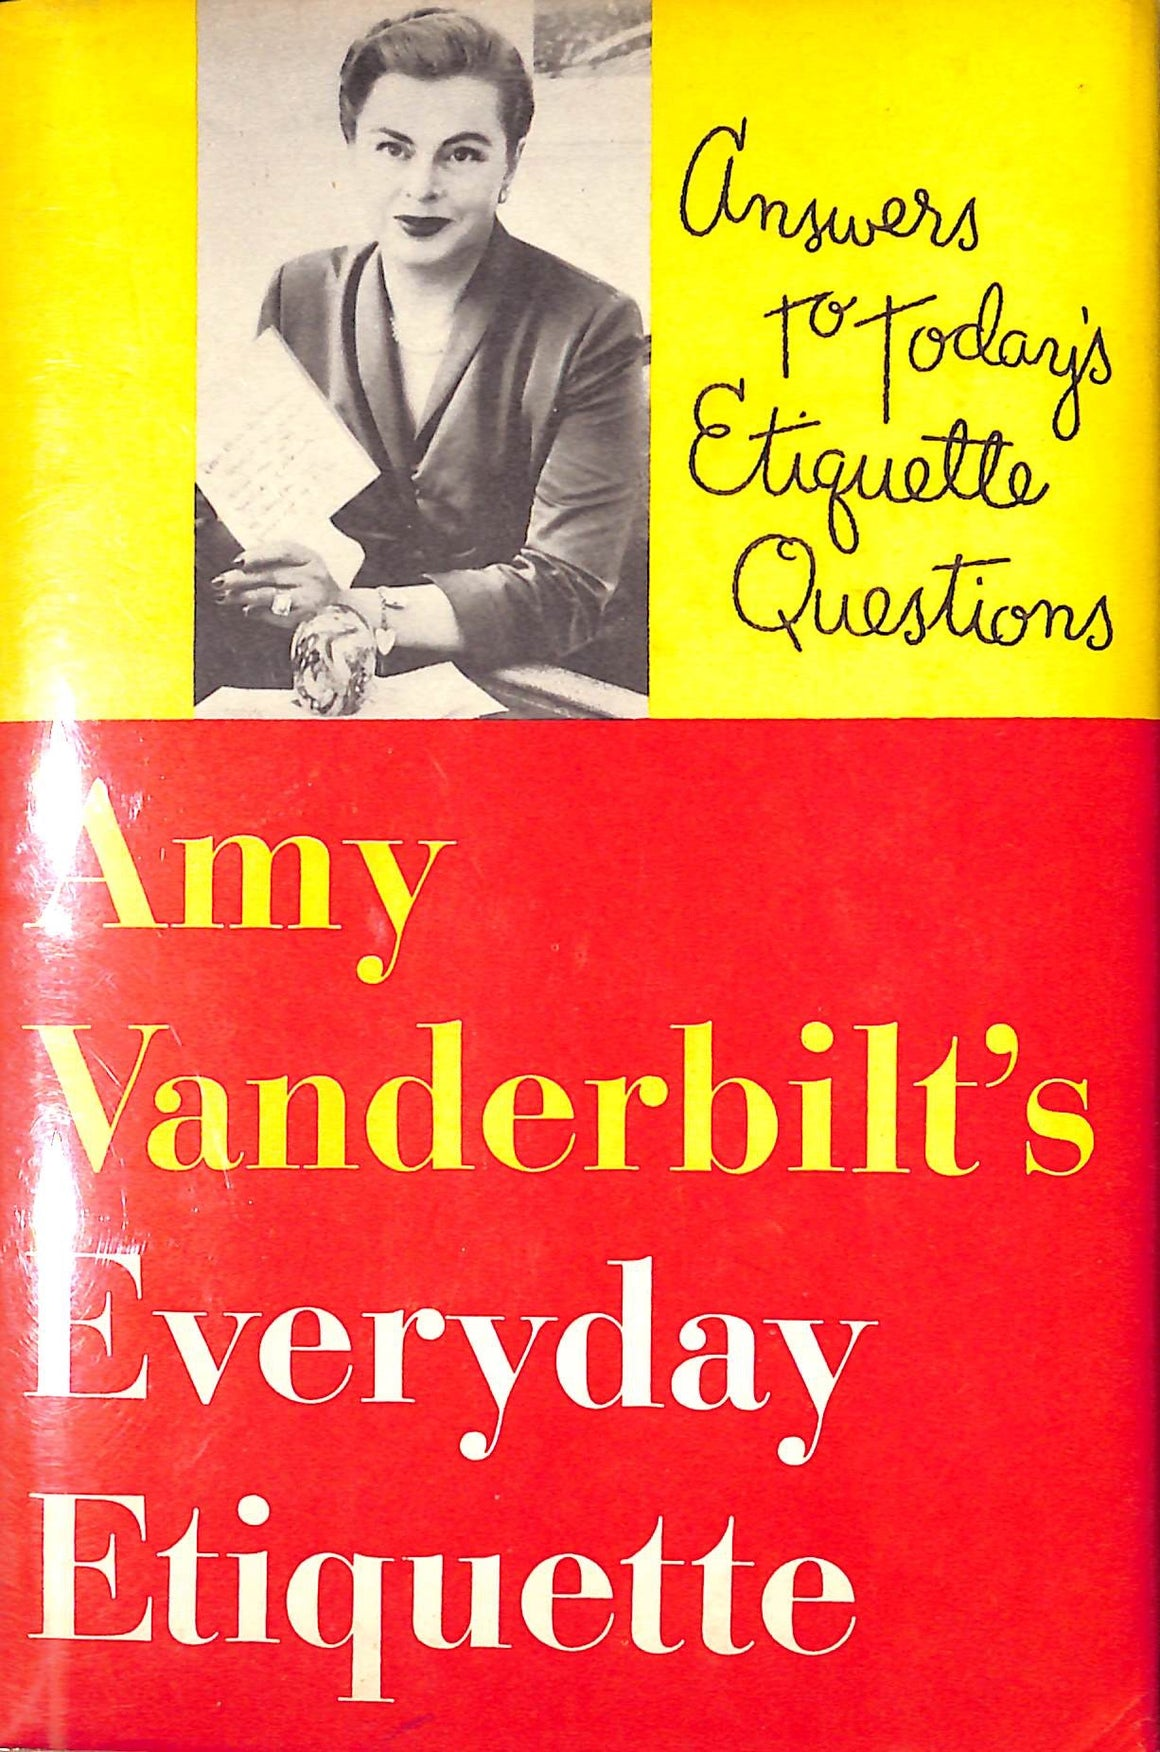 Amy Vanderbilt's Everyday Etiquette by Amy Vanderbilt